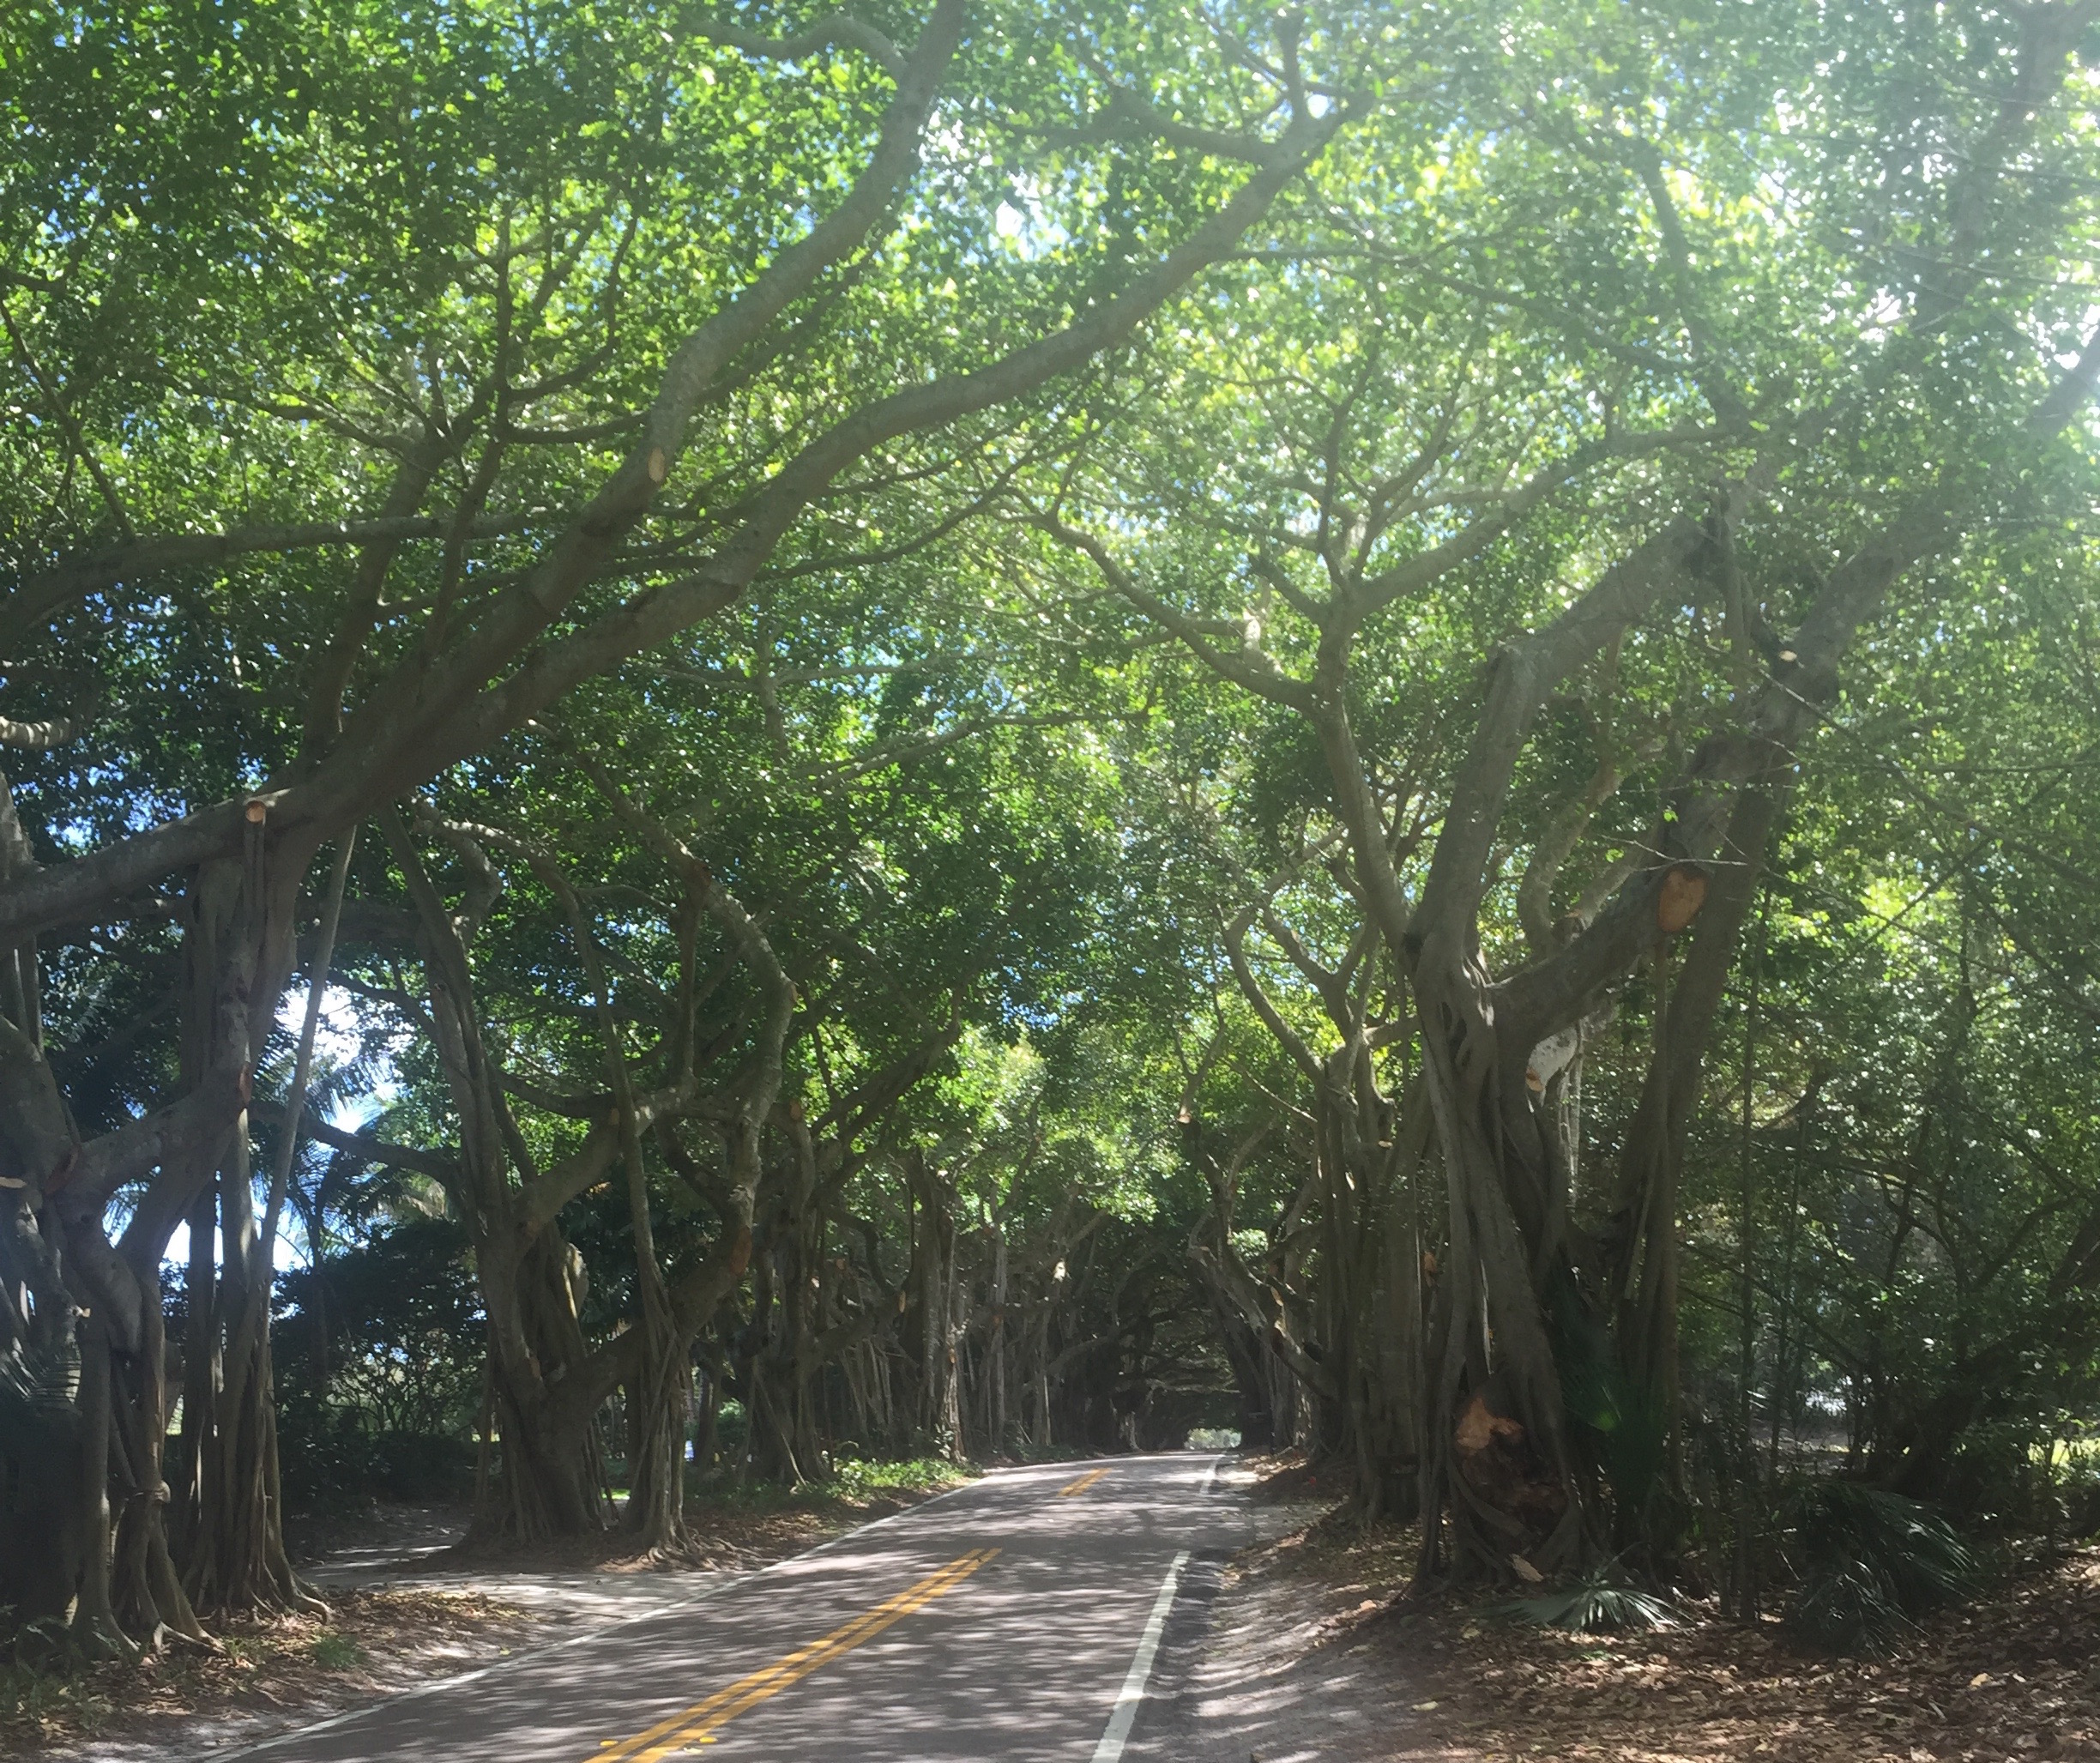 Banyan trees covering the road.